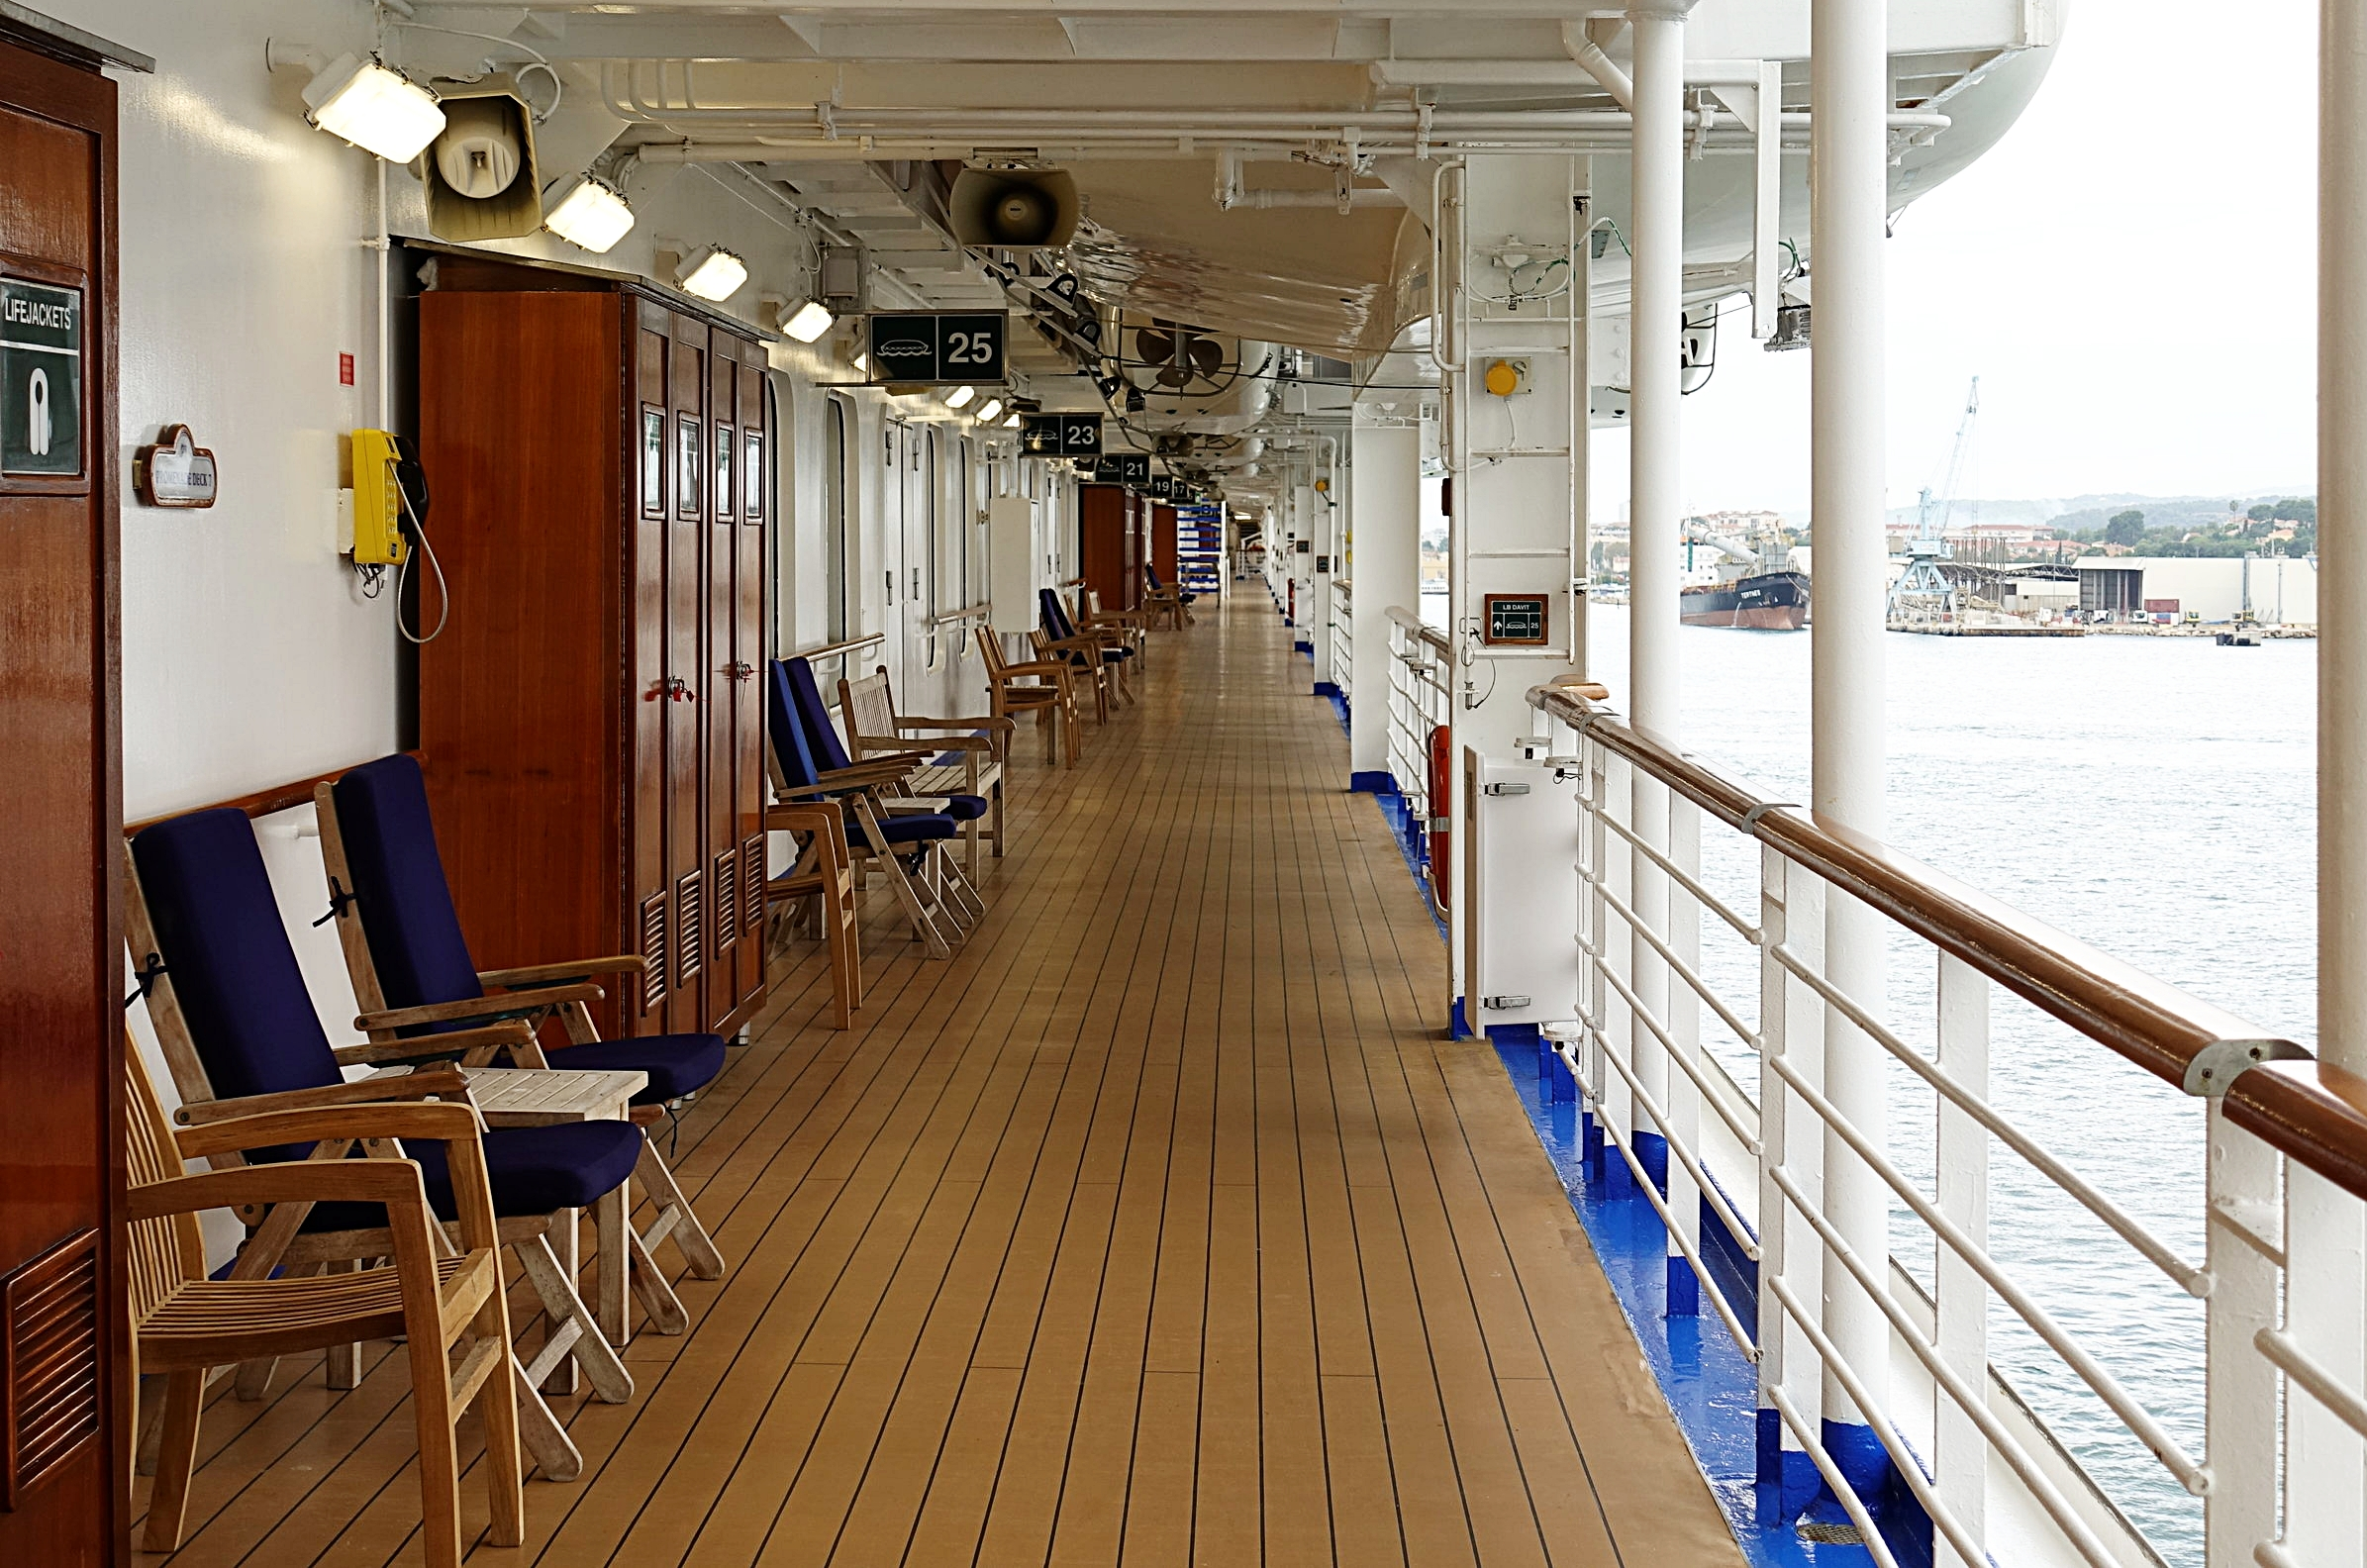 We love a traditional promenade deck that allows you to walk all the way round the ship.